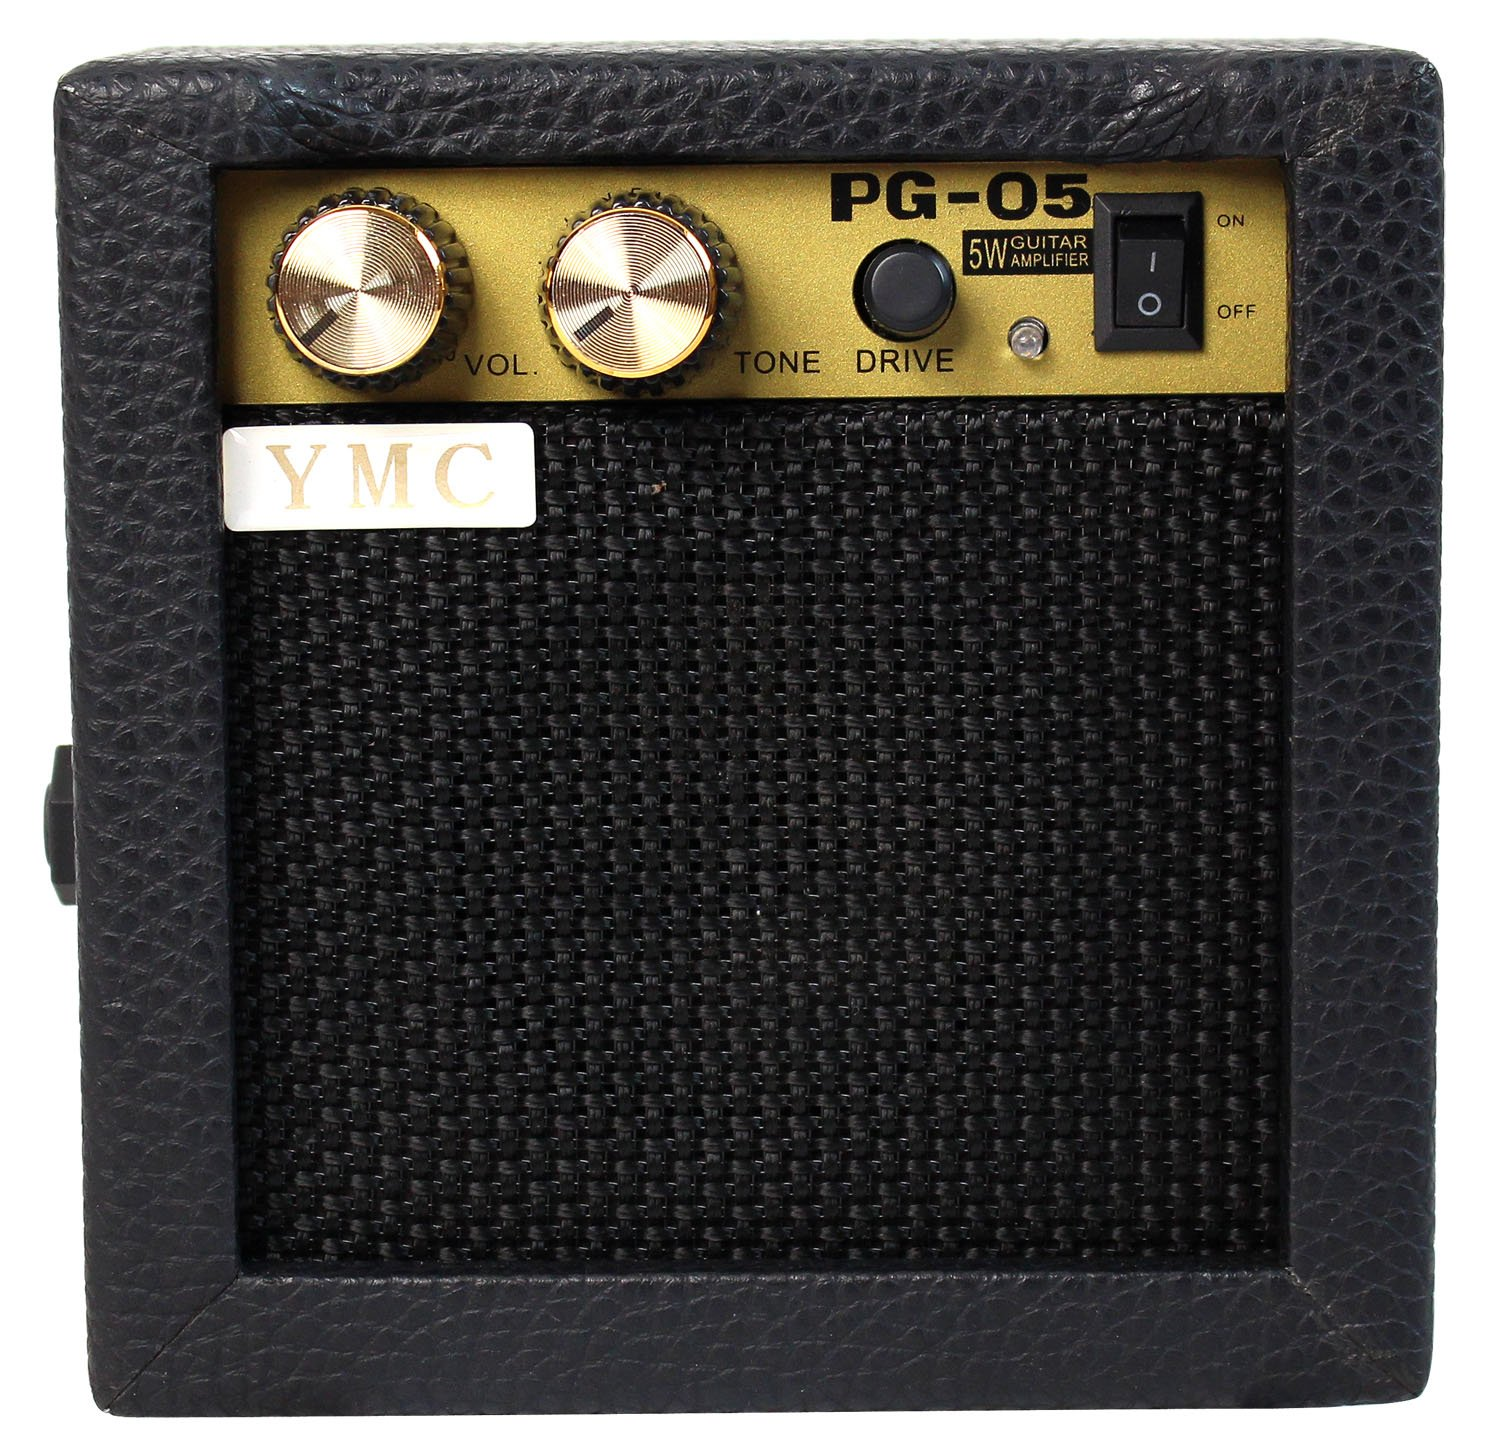 YMC PG-05 5W Electric Guitar Amp Portable Amplifier Speaker with Volume Tone Control